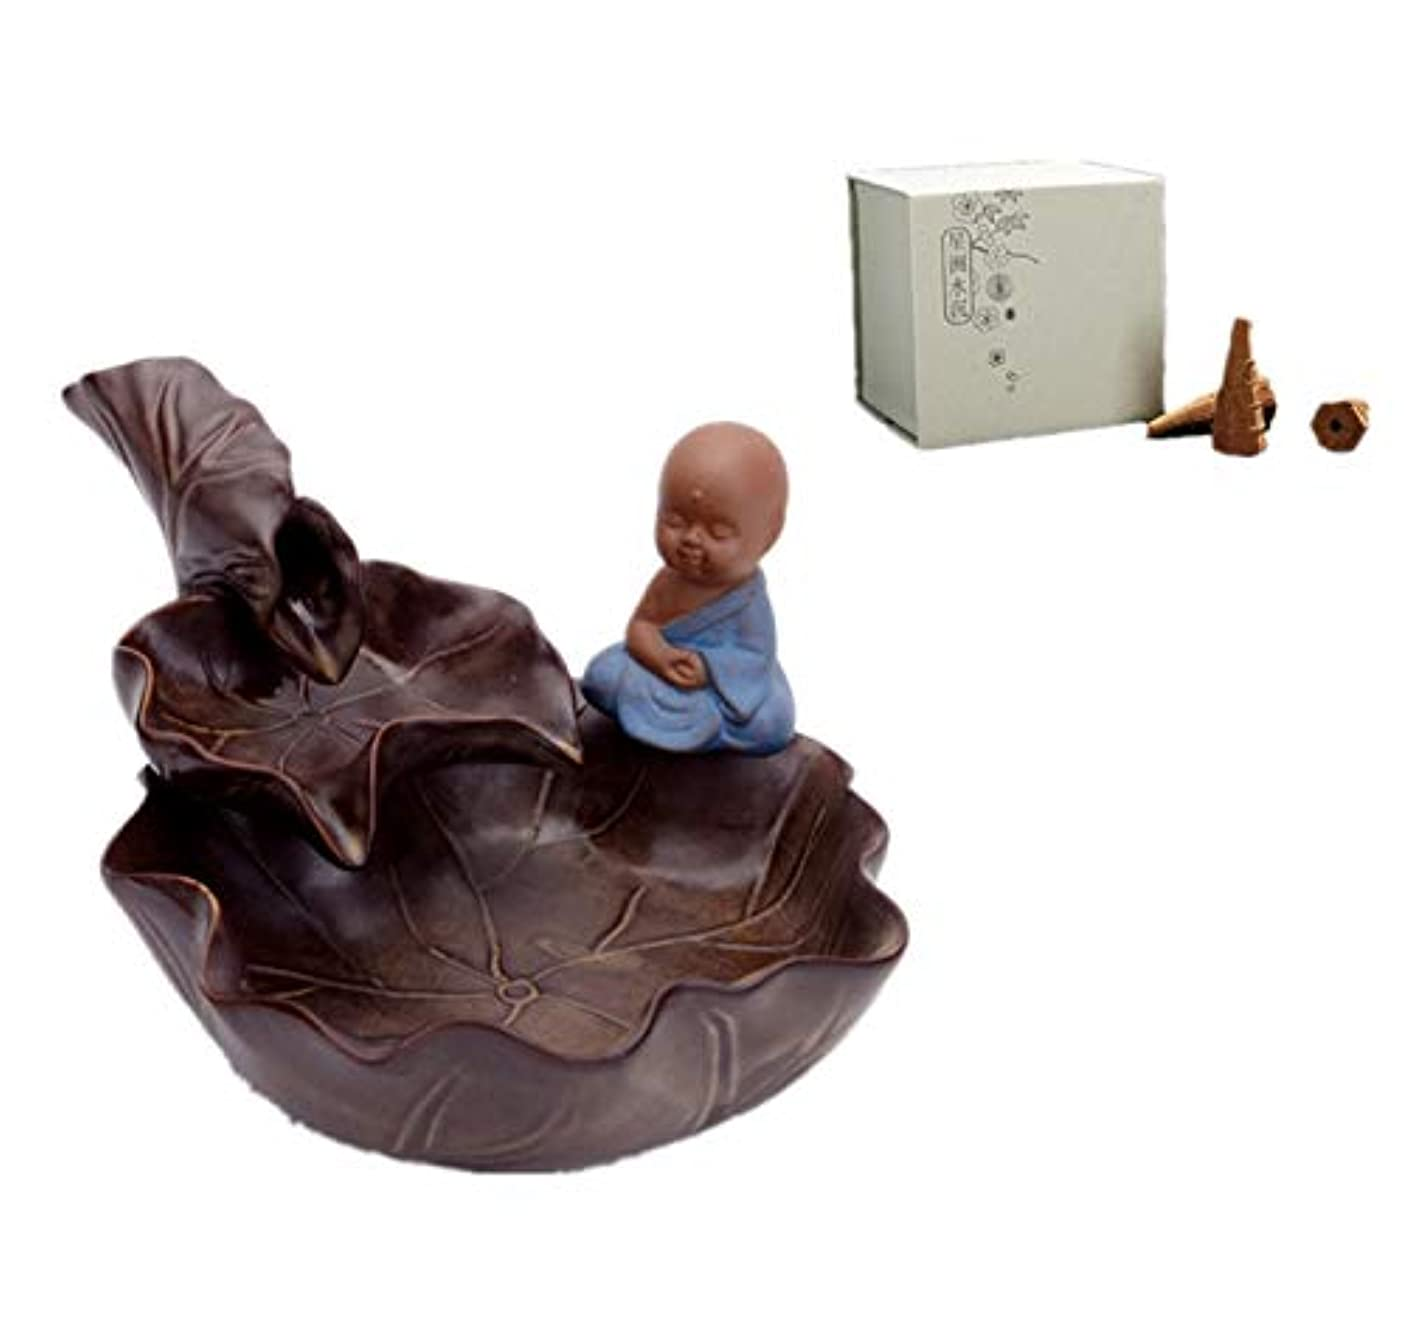 やがて時計回り差別化するXPPXPP Reflux Incense Burner With 40 Reflux Cones, Household Ceramic Reflux Cone-Shaped Candlestick Burner